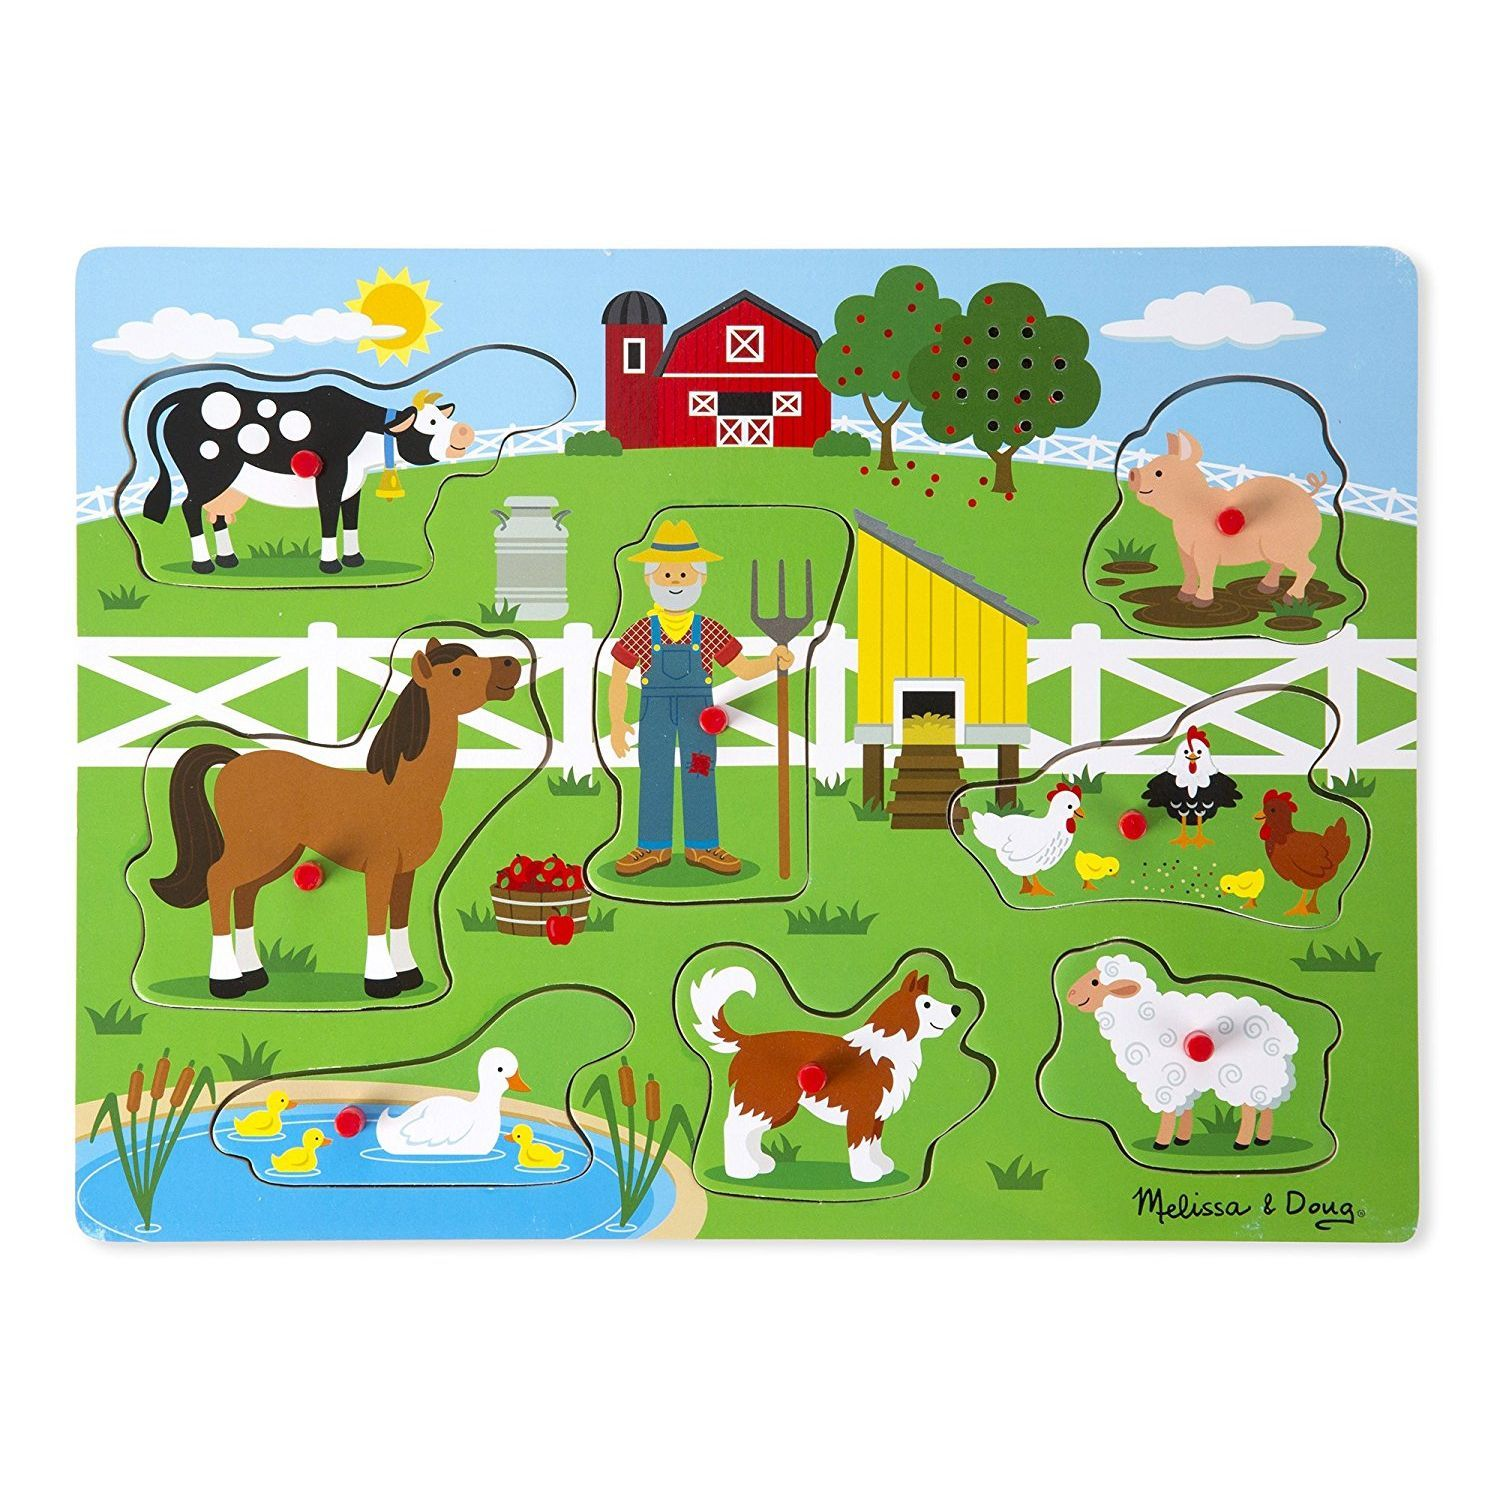 Old MacDonald's Farm Sound Puzzl by Melissa & Doug